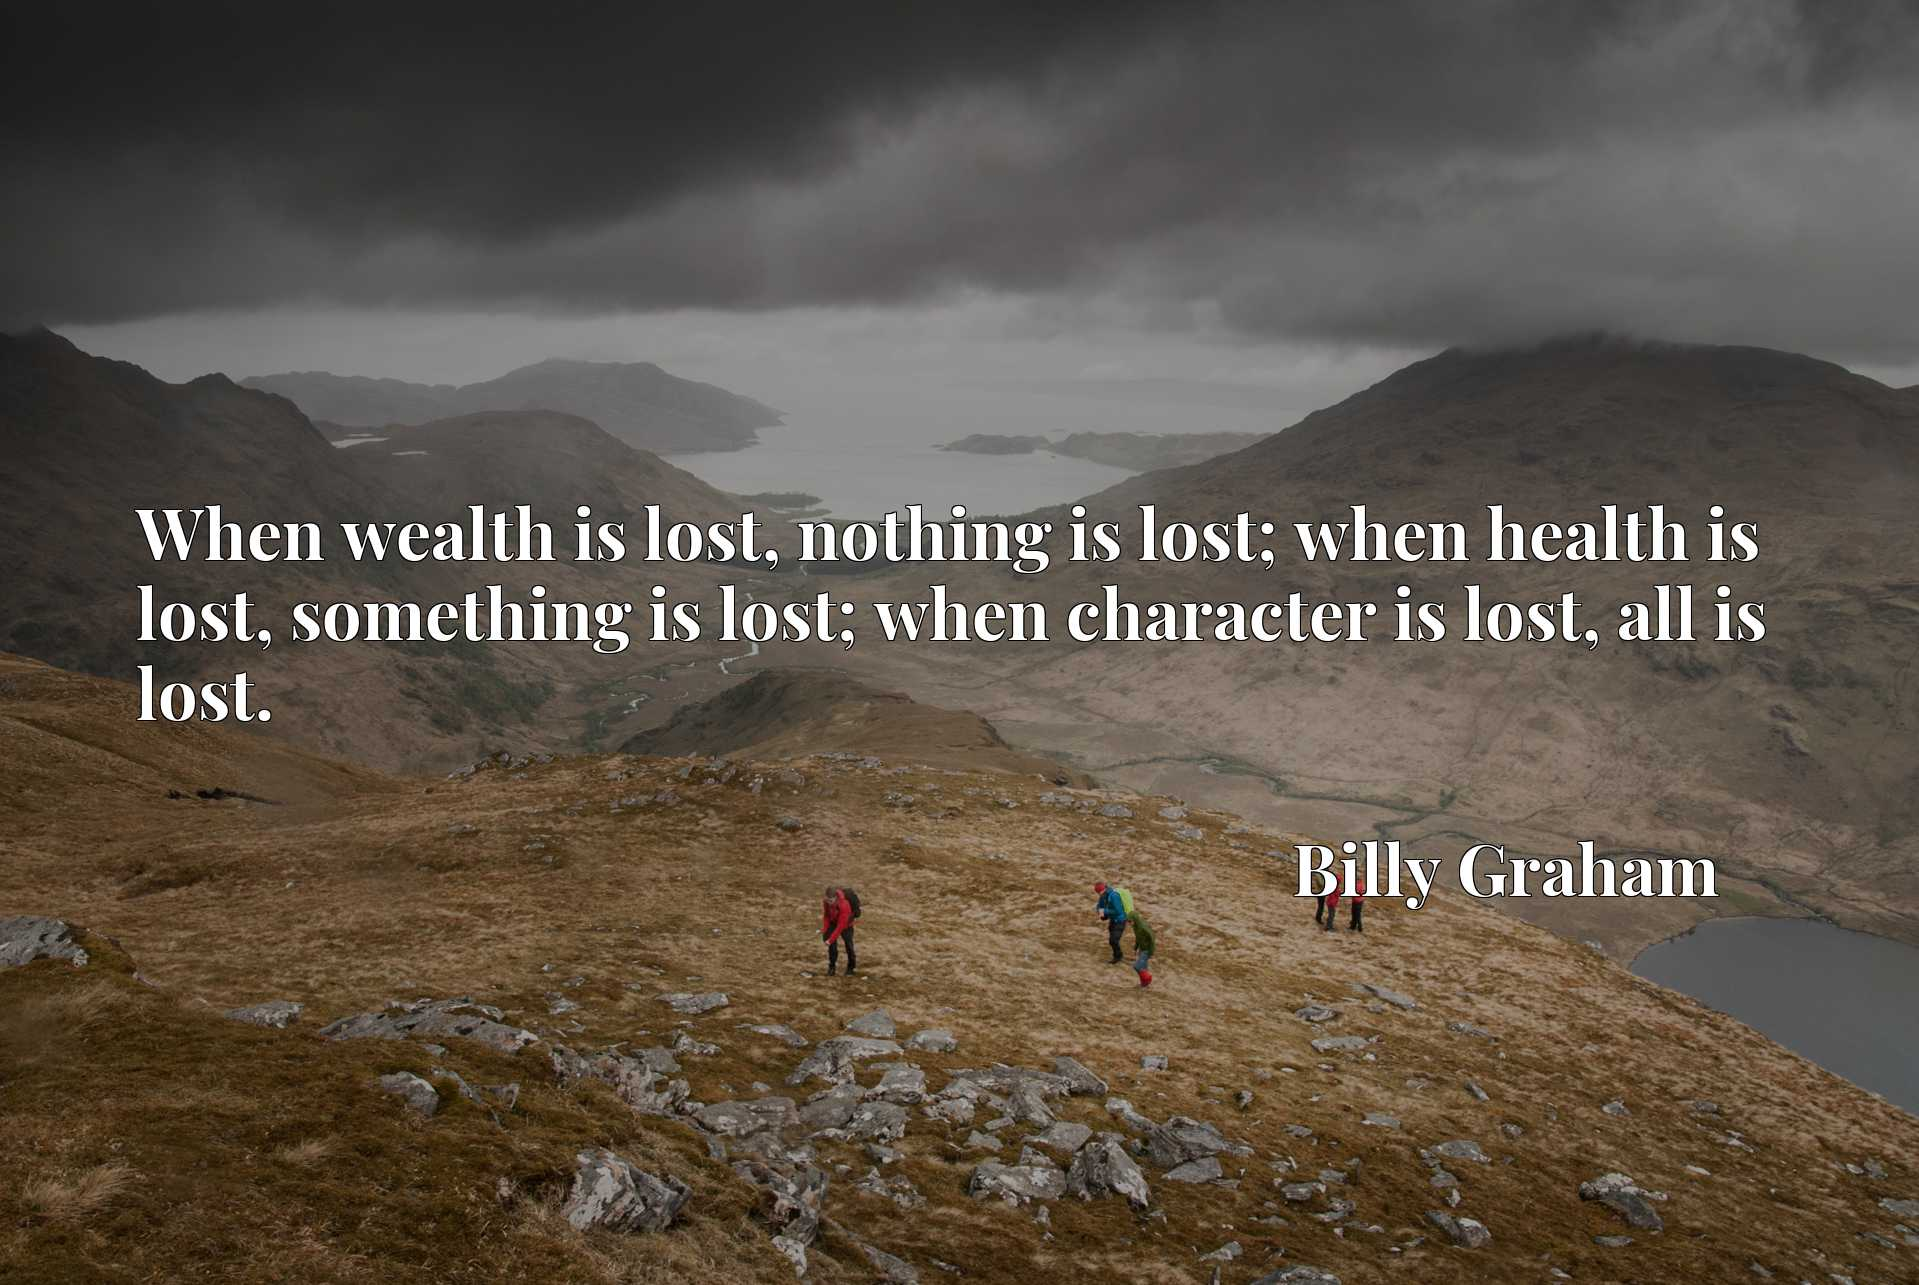 When wealth is lost, nothing is lost; when health is lost, something is lost; when character is lost, all is lost.